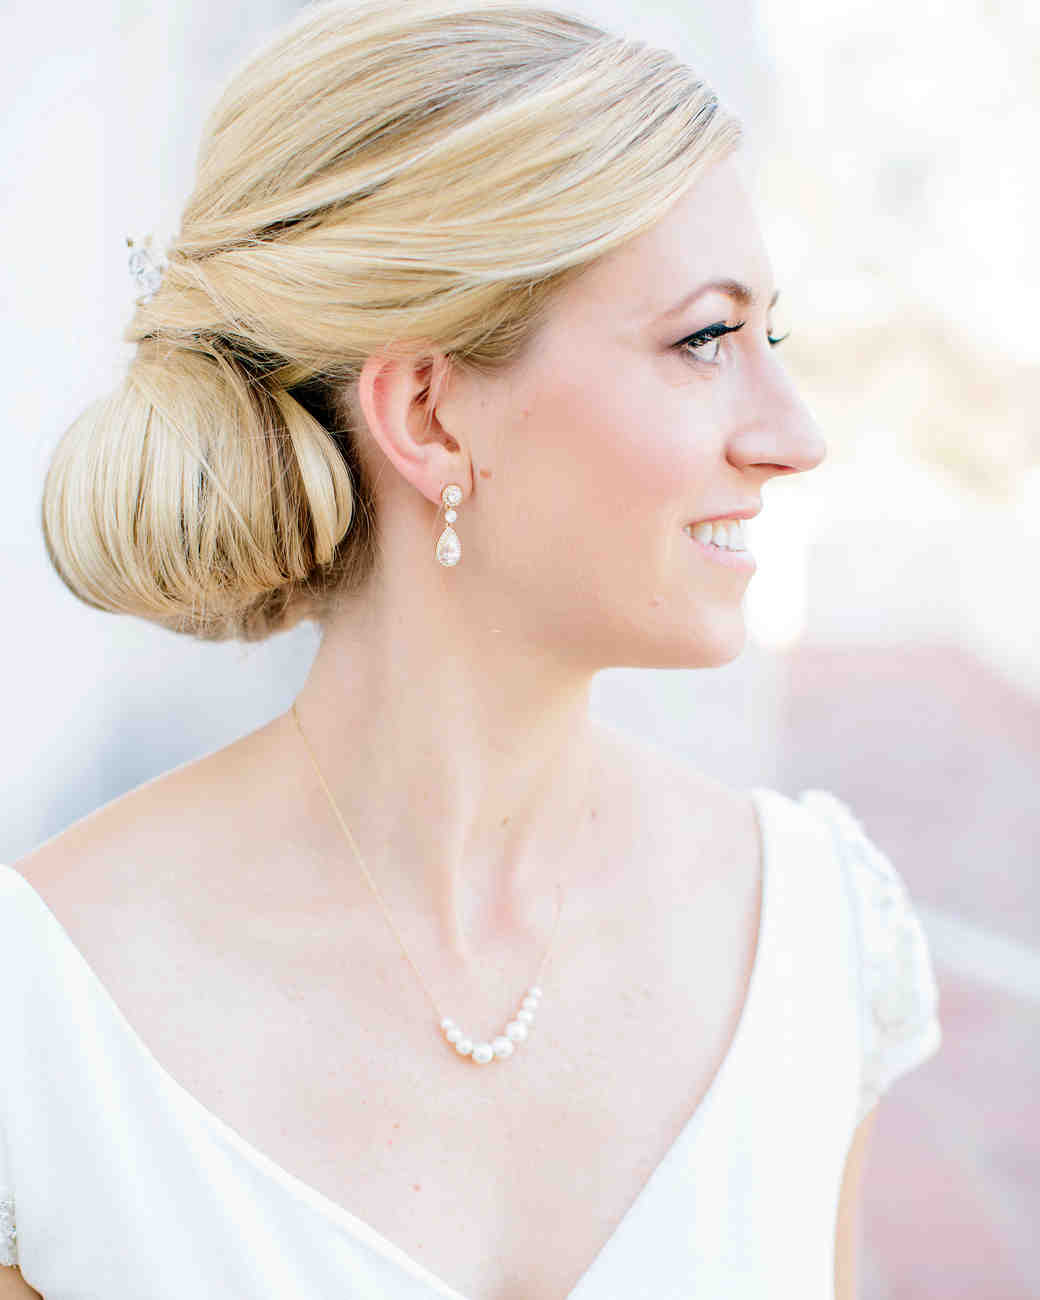 julie anthony real wedding updo hair style